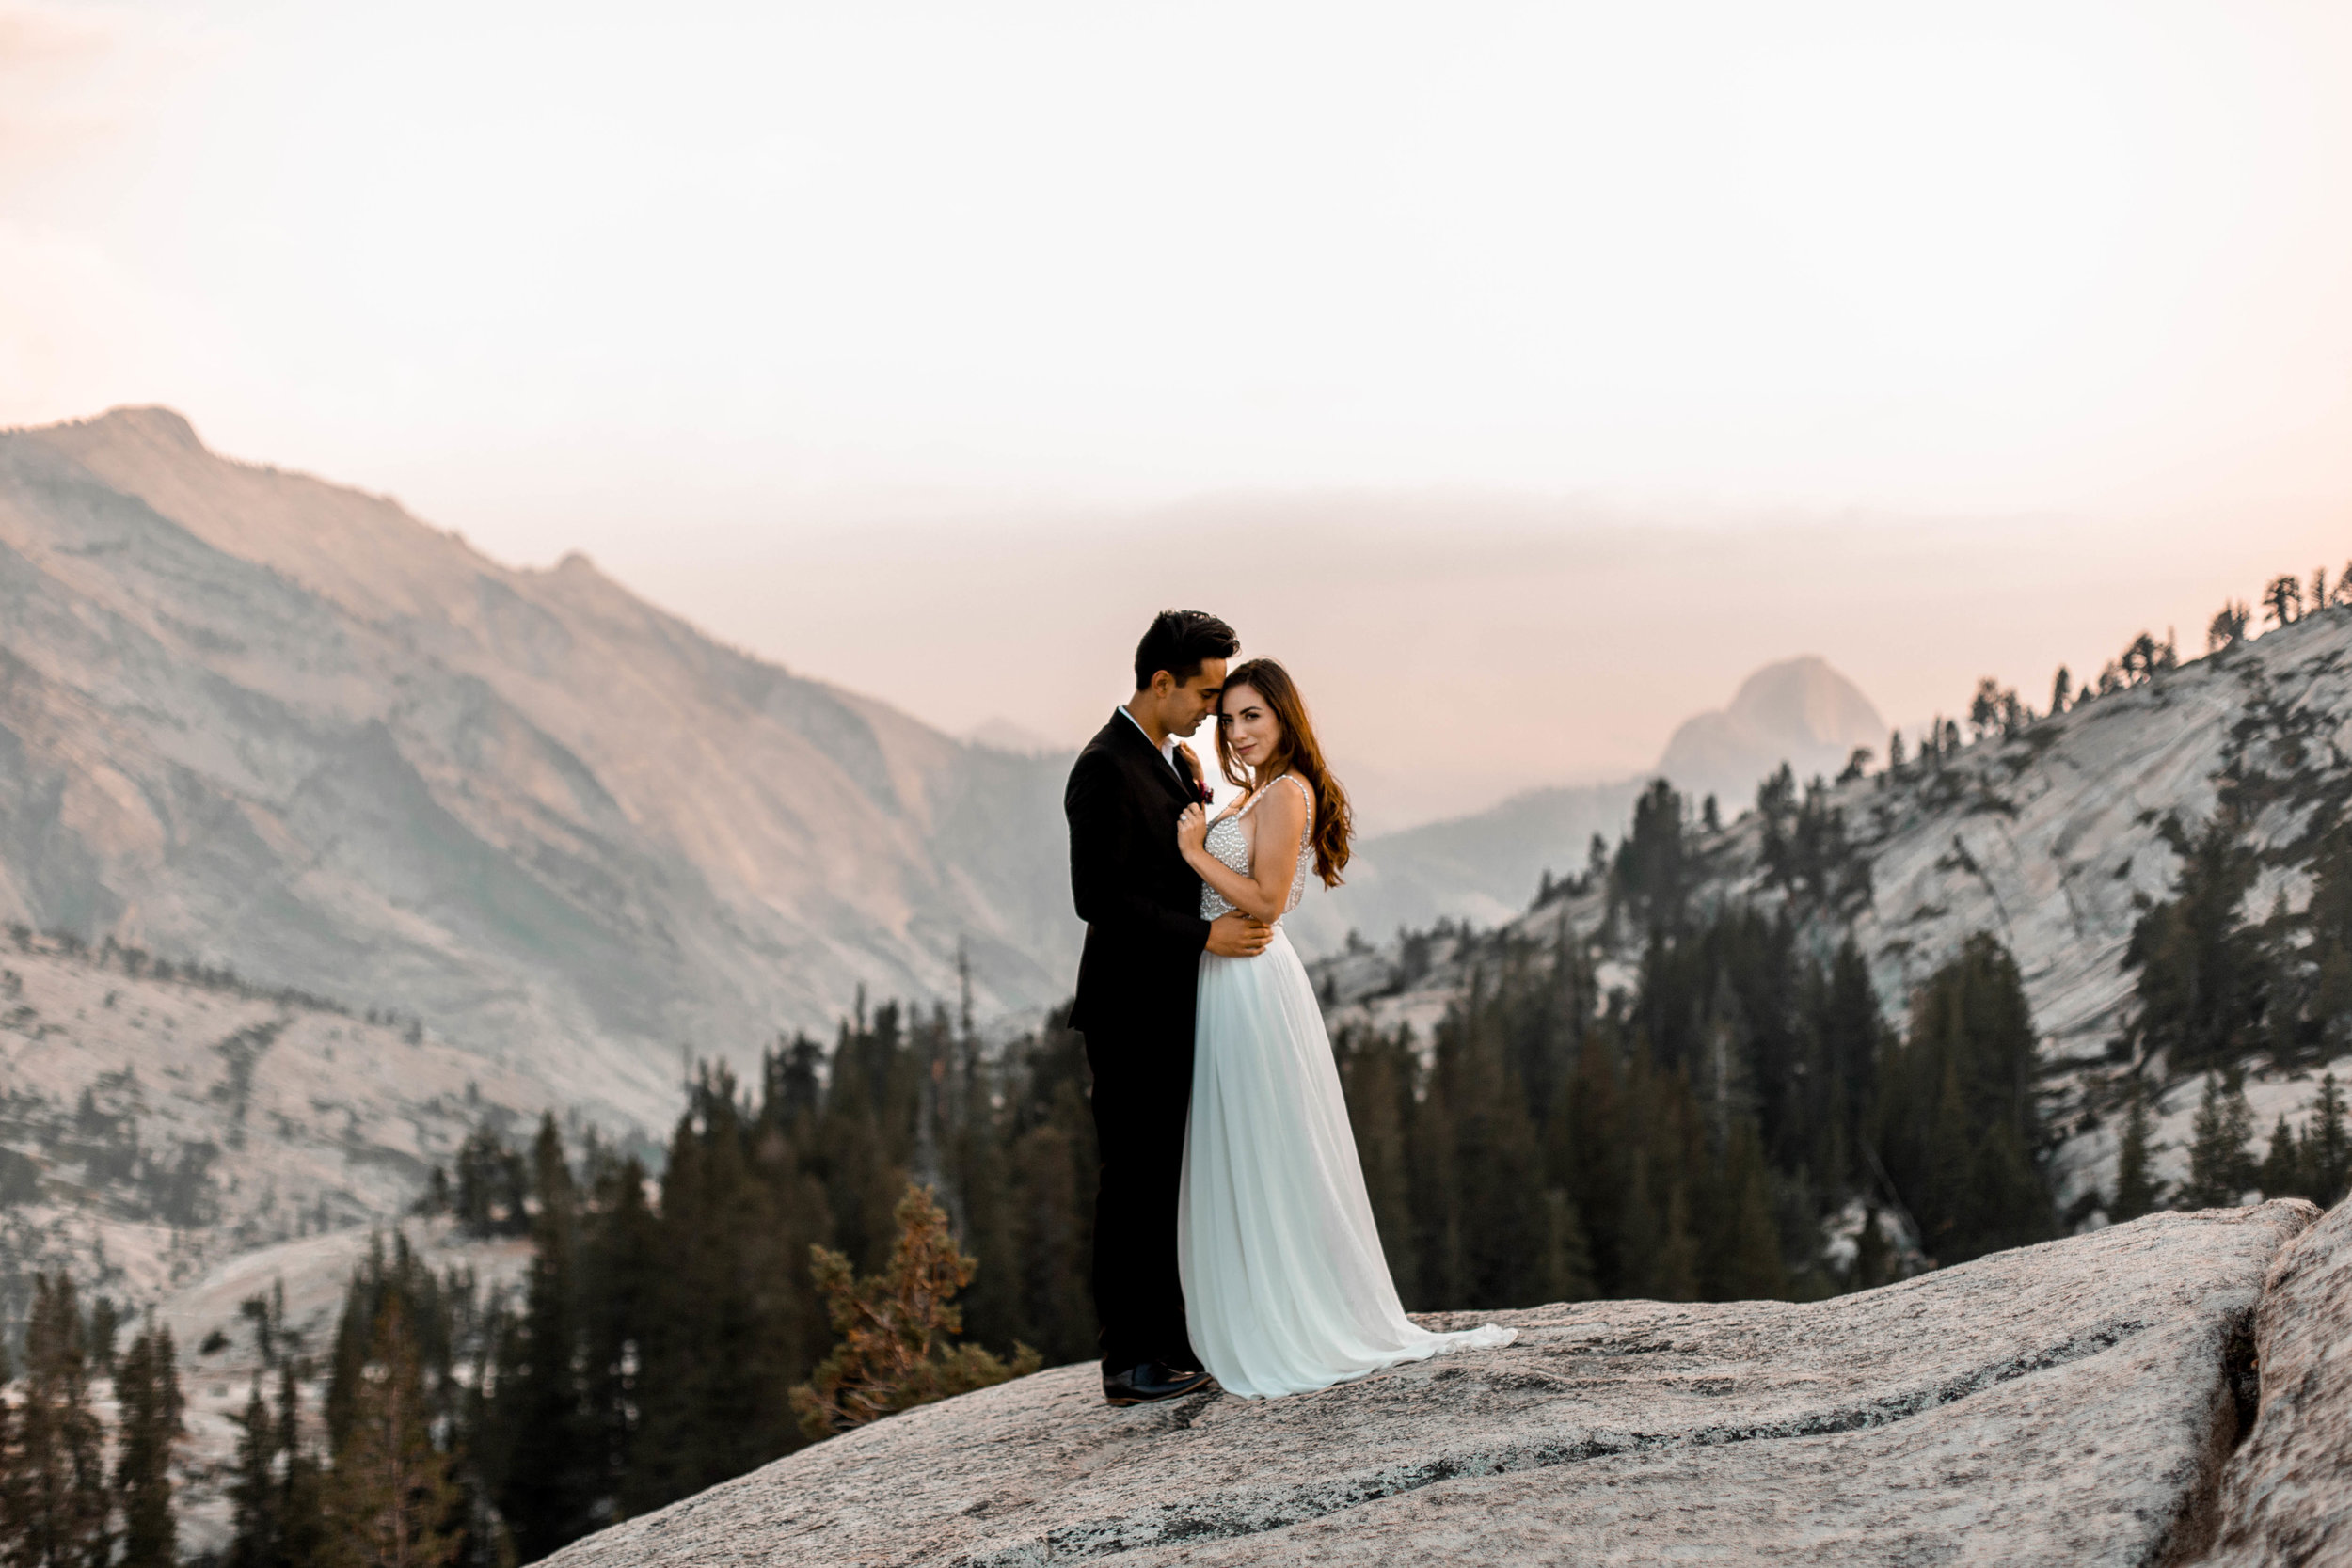 nicole-daacke-photography-yosemite-national-park-wedding-sunset-elopement-olmstead-point-yosemite-adventure-wedding-photographer-adventurous-elopement-destination-wedding-national-park-wedding-photography-1717.jpg